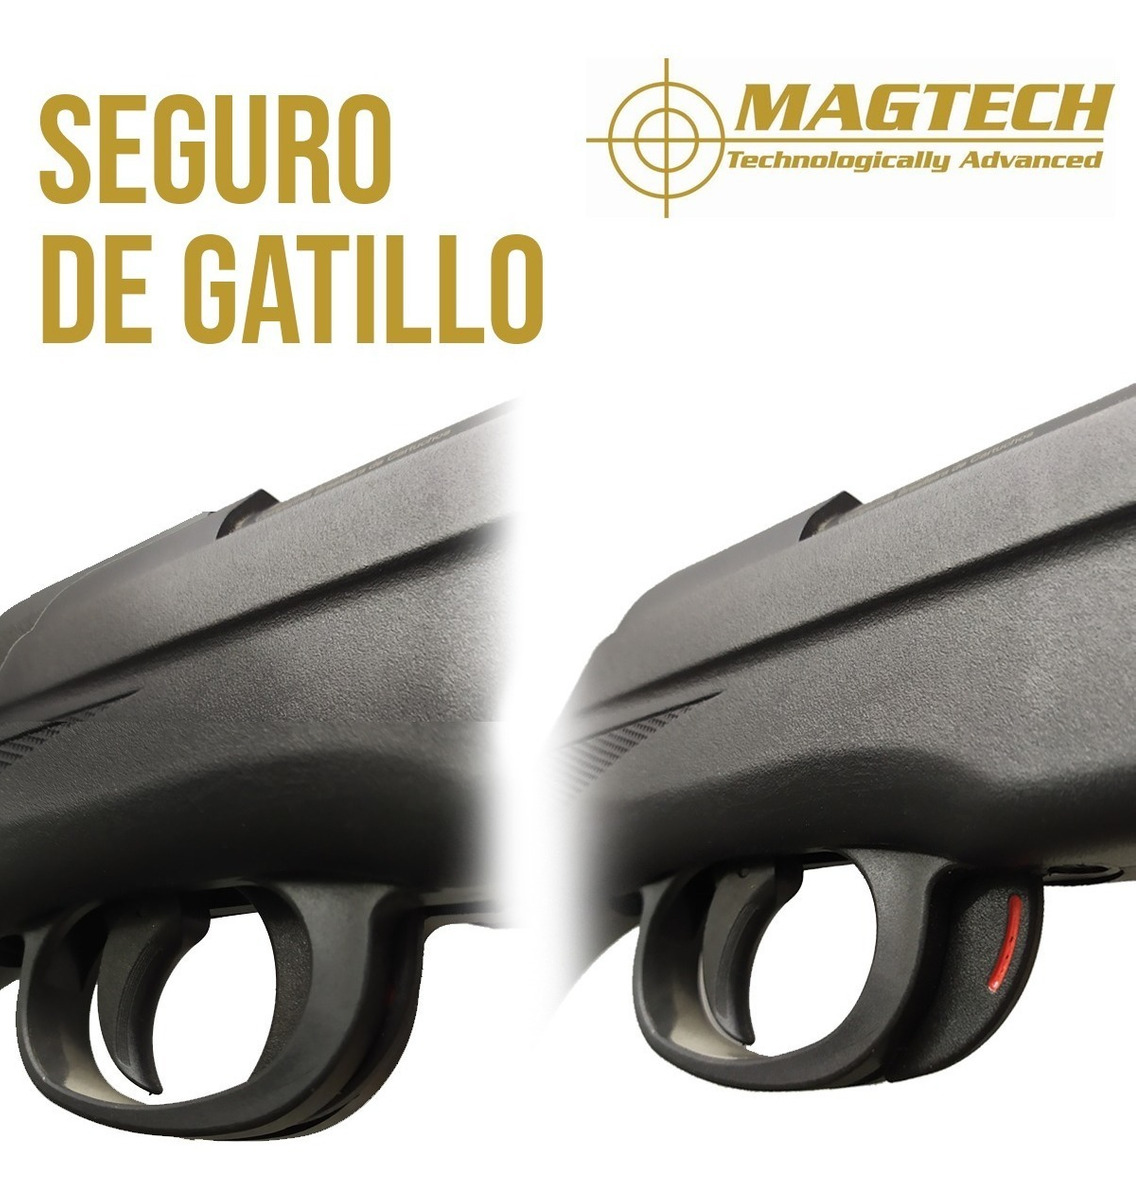 Rifle Nitro Piston Magtech N2 800 Fps 5 5 Aire Comprimido